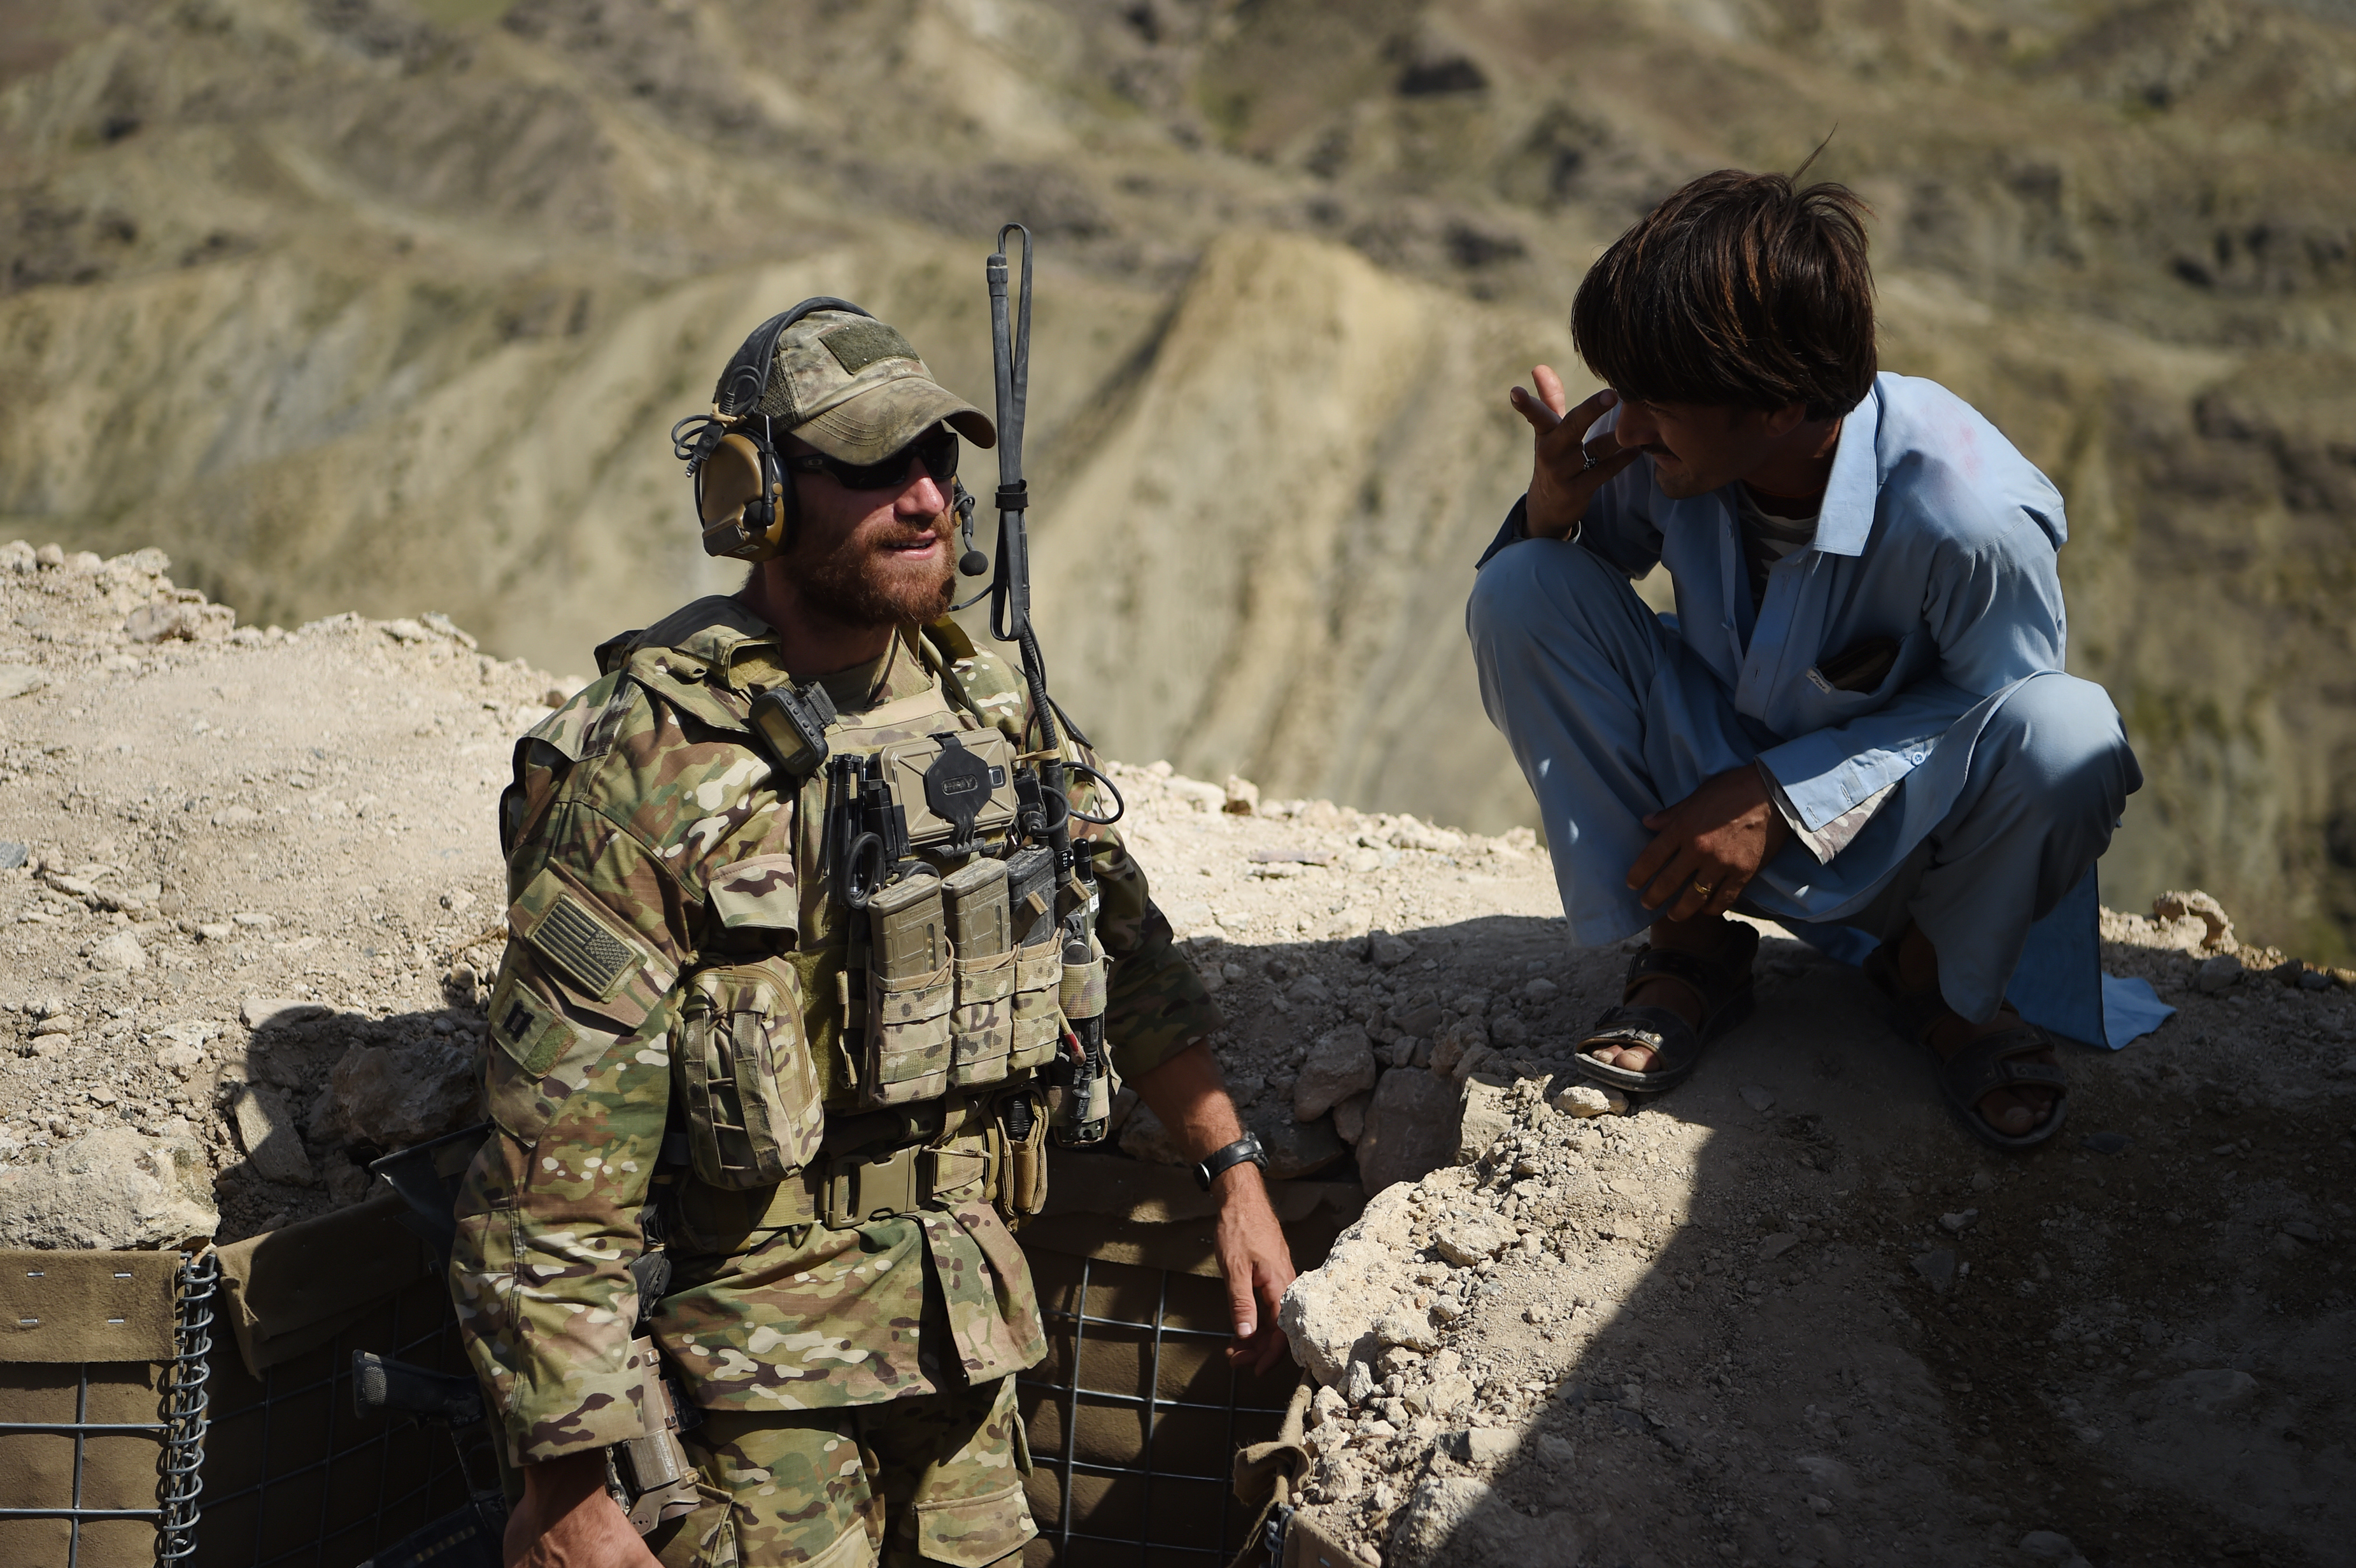 Rumours about US support for ISIS in Afghanistan dismissed as foreign ploy